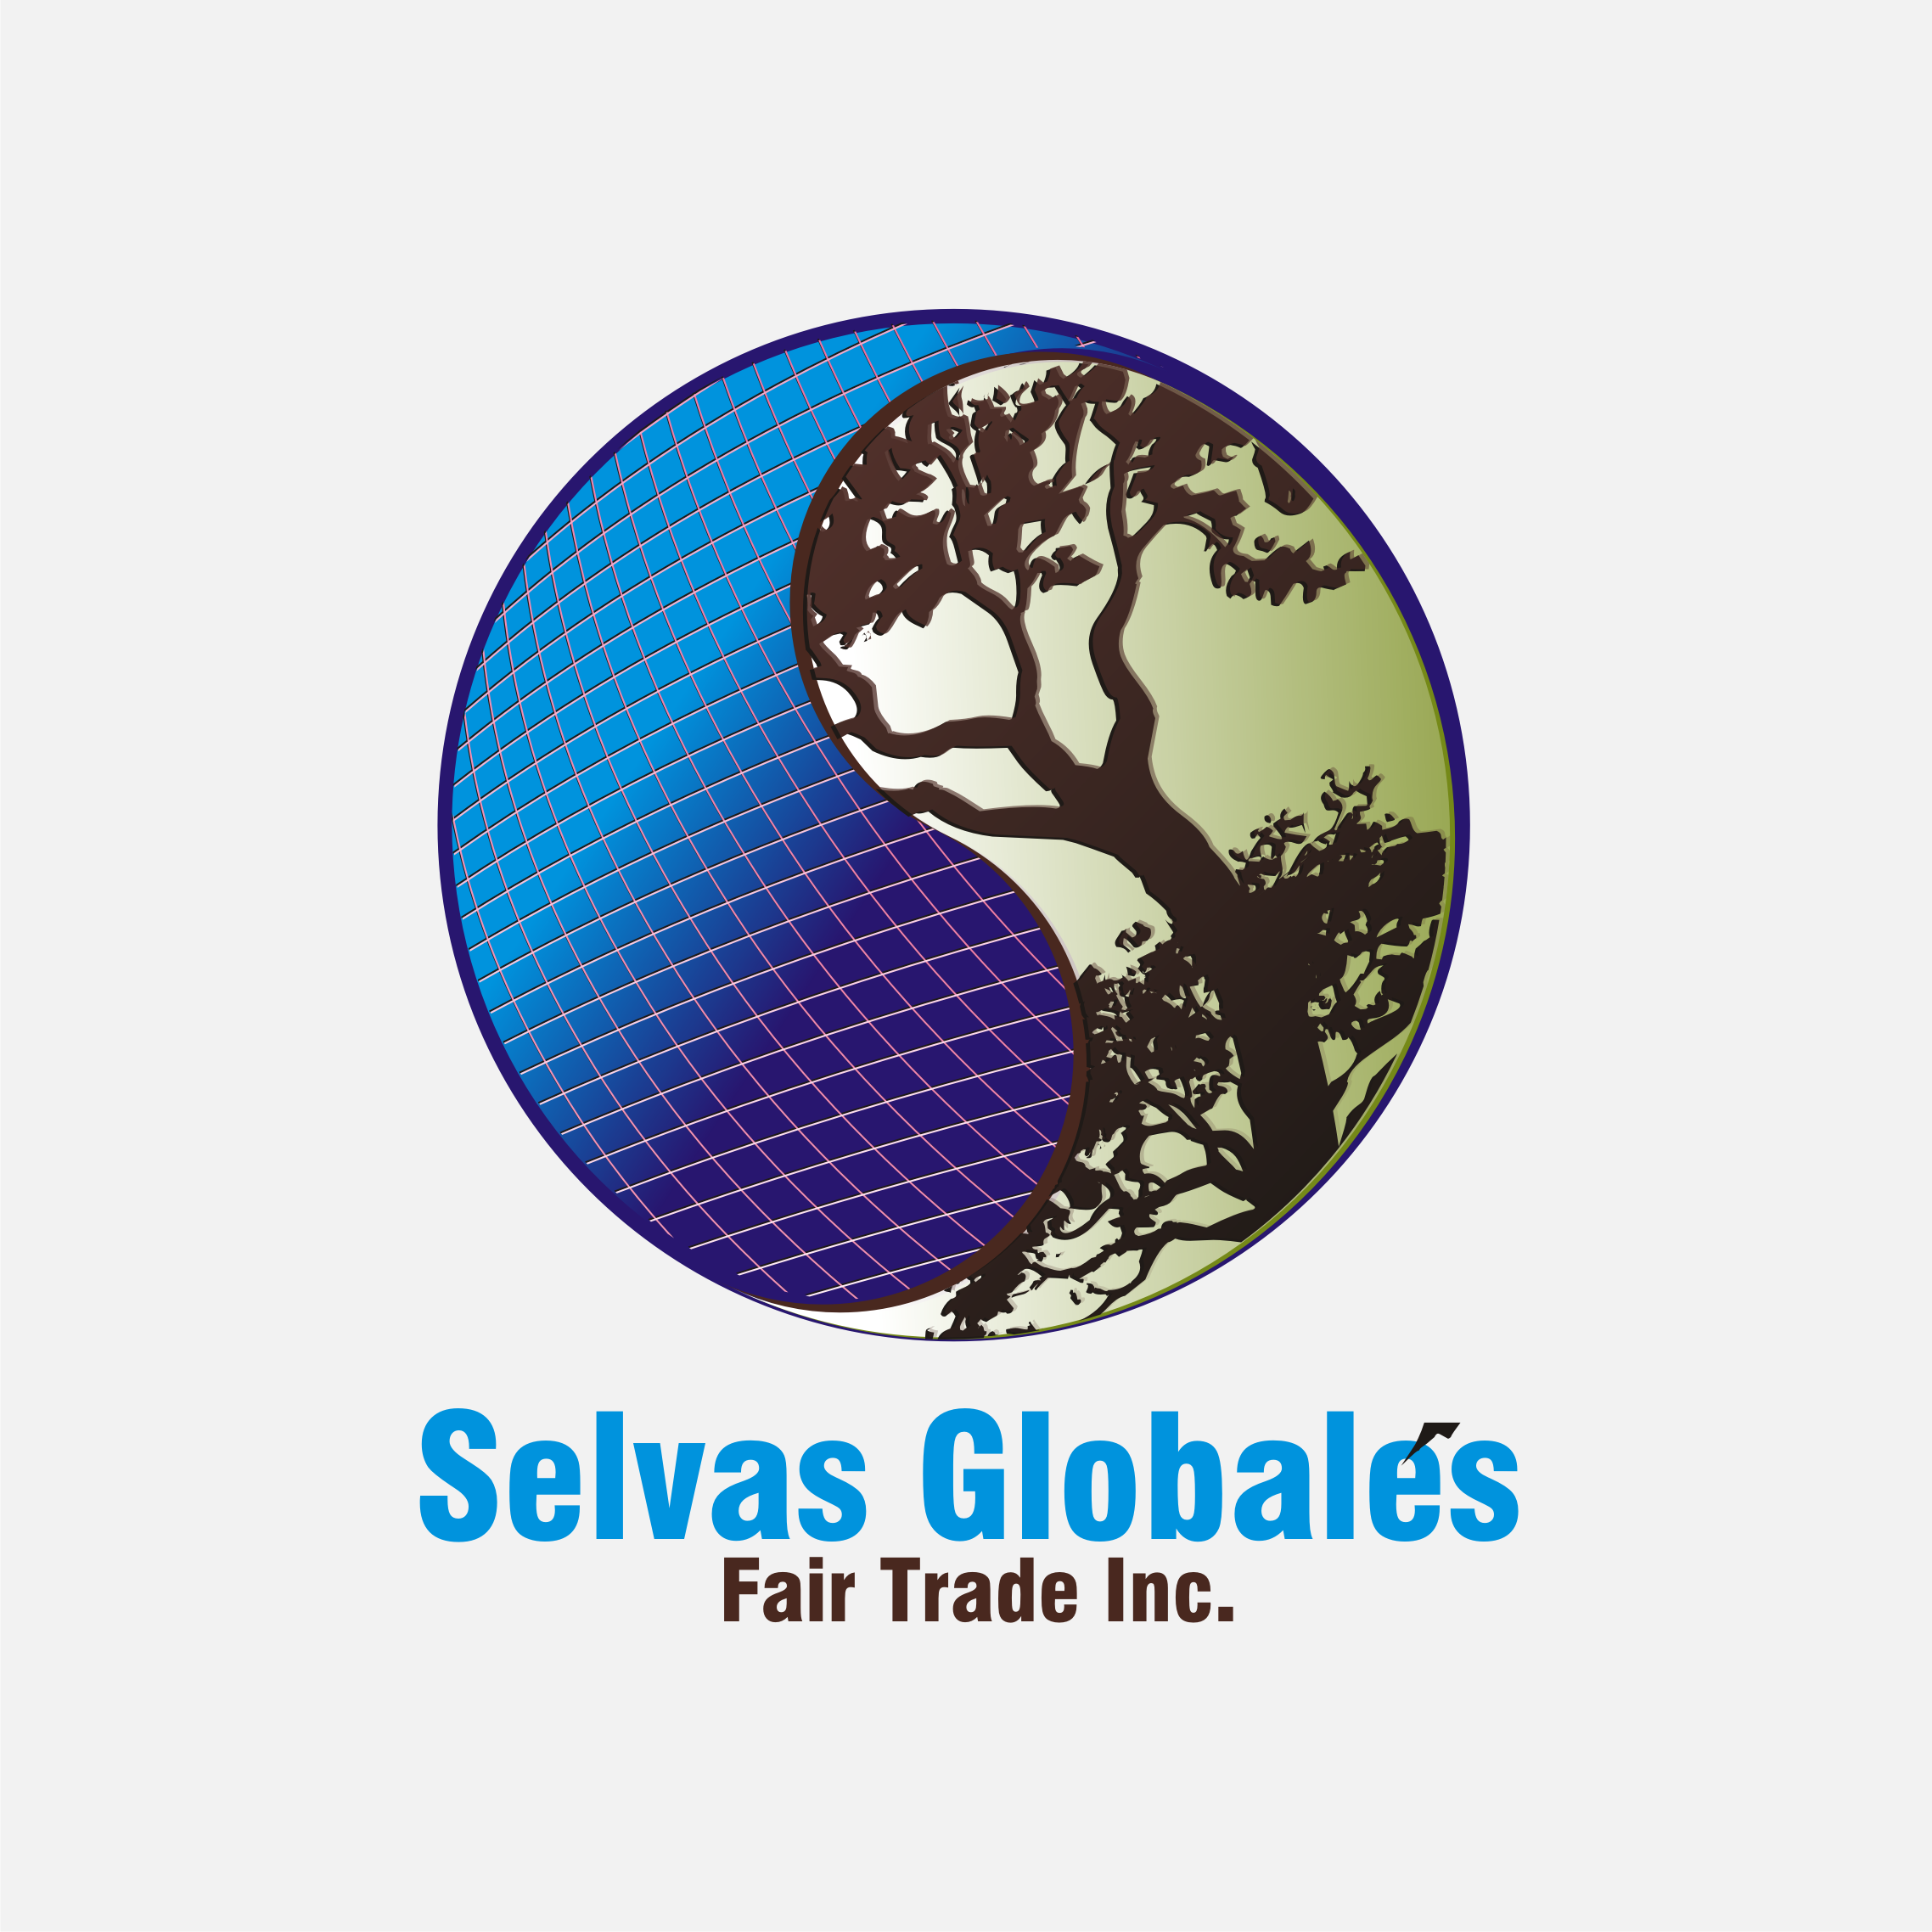 Logo Design by Private User - Entry No. 105 in the Logo Design Contest Captivating Logo Design for Selvas Globales Fair Trade Inc..